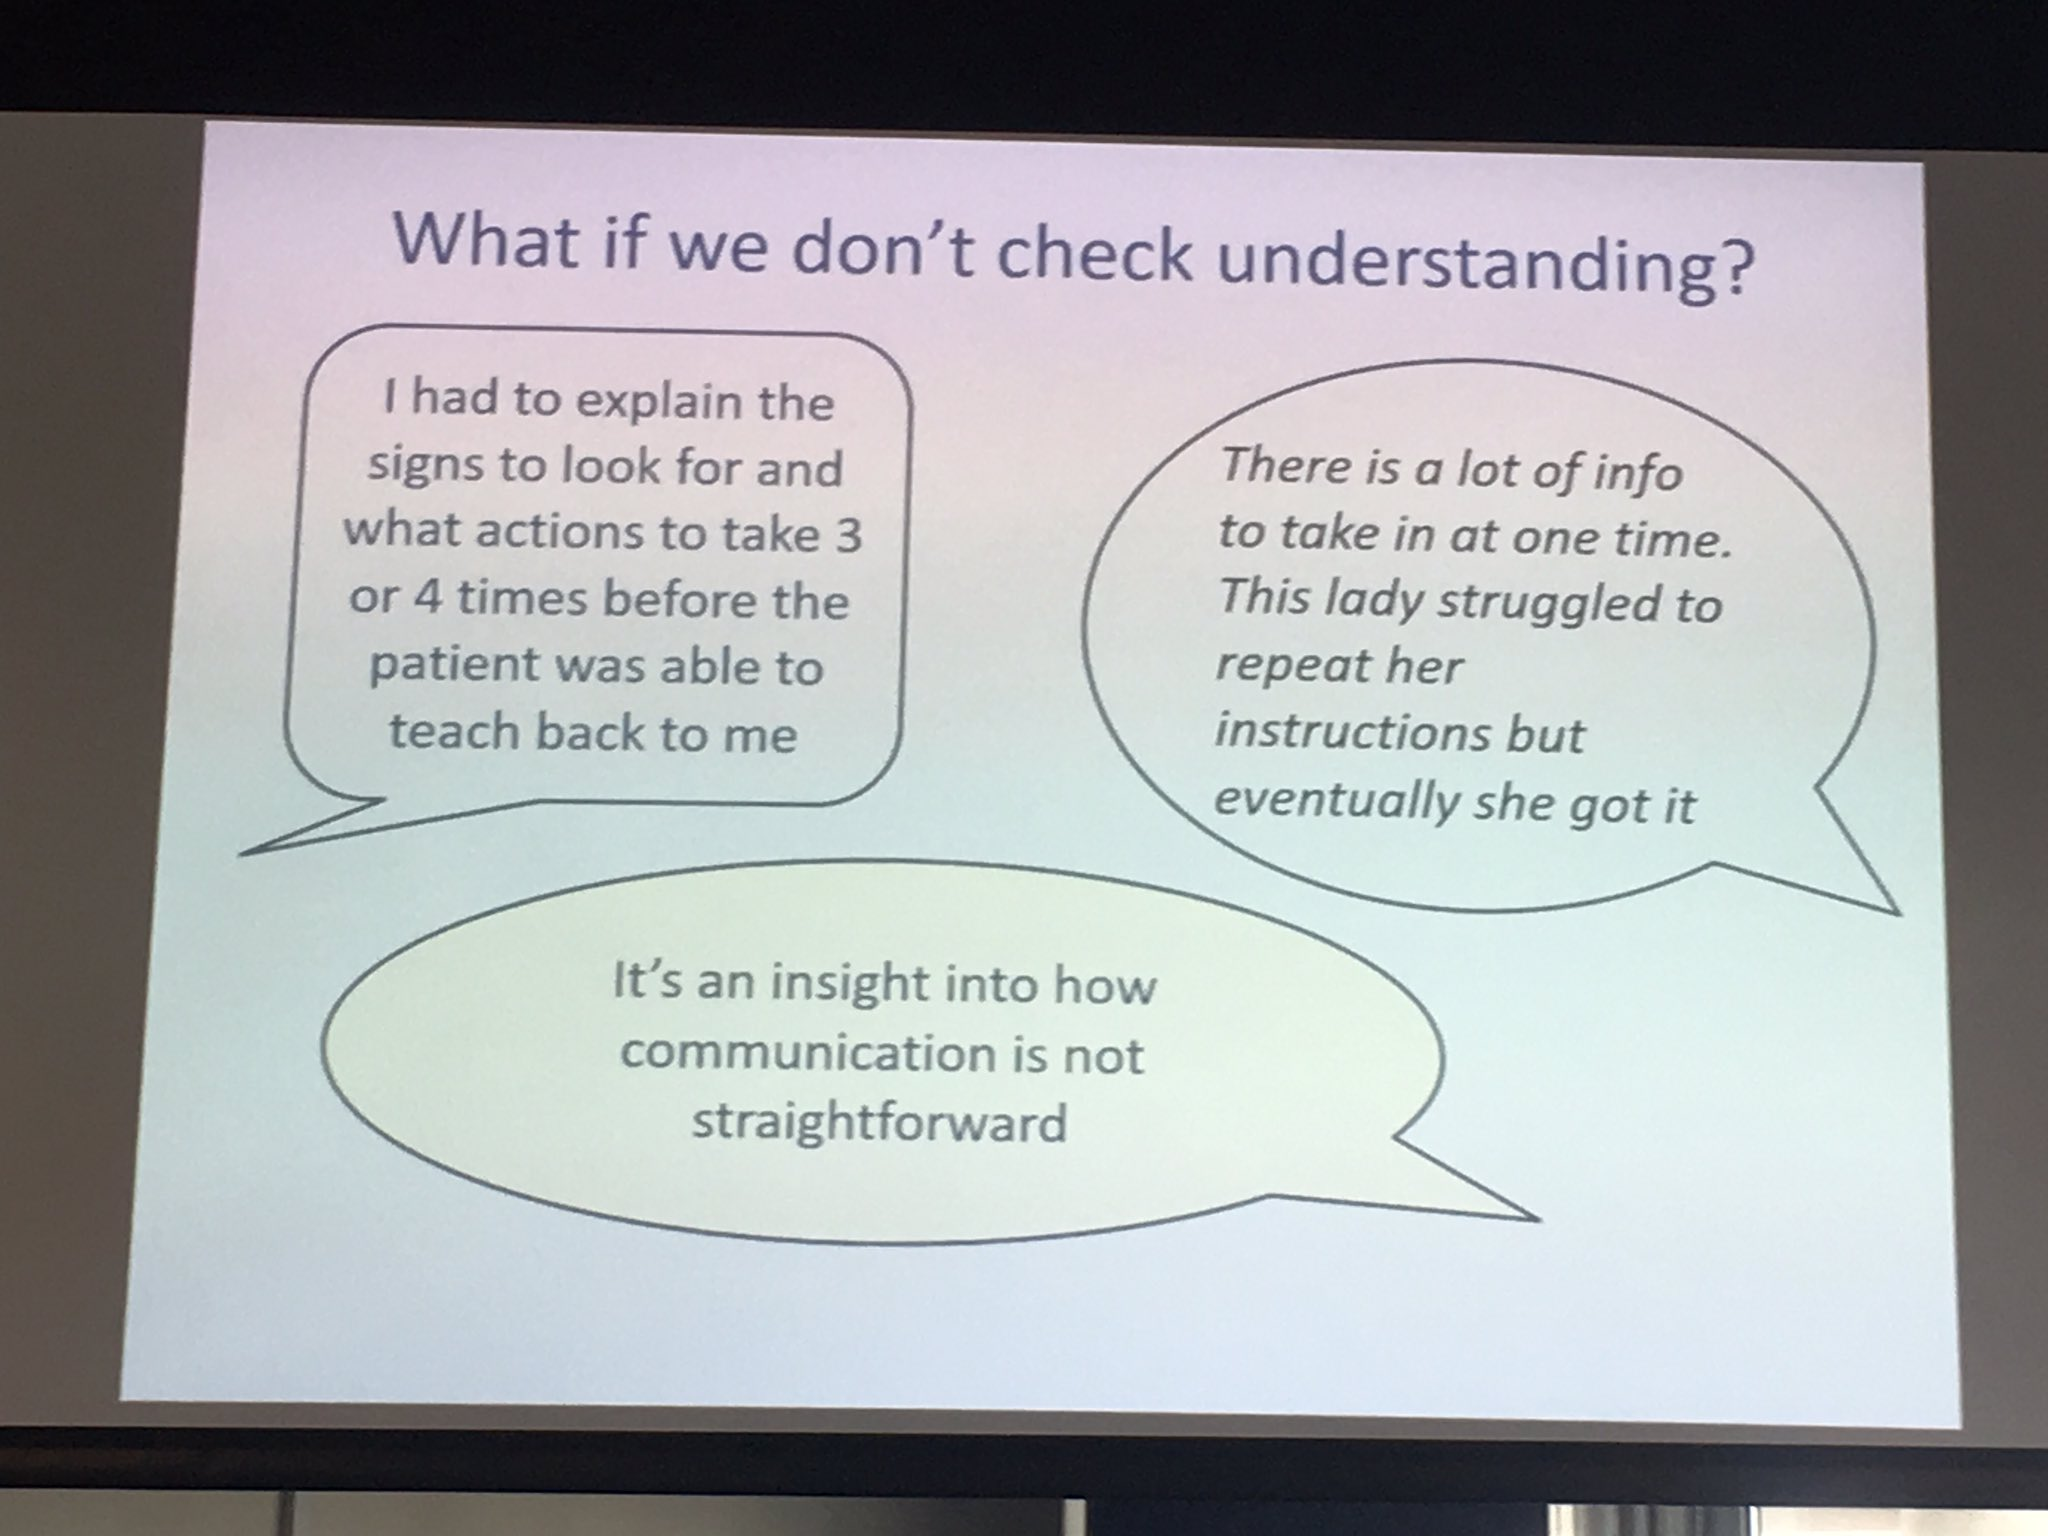 Using teach back consequences of not.... #healthlitdiscovery https://t.co/C0xKN0LVhw